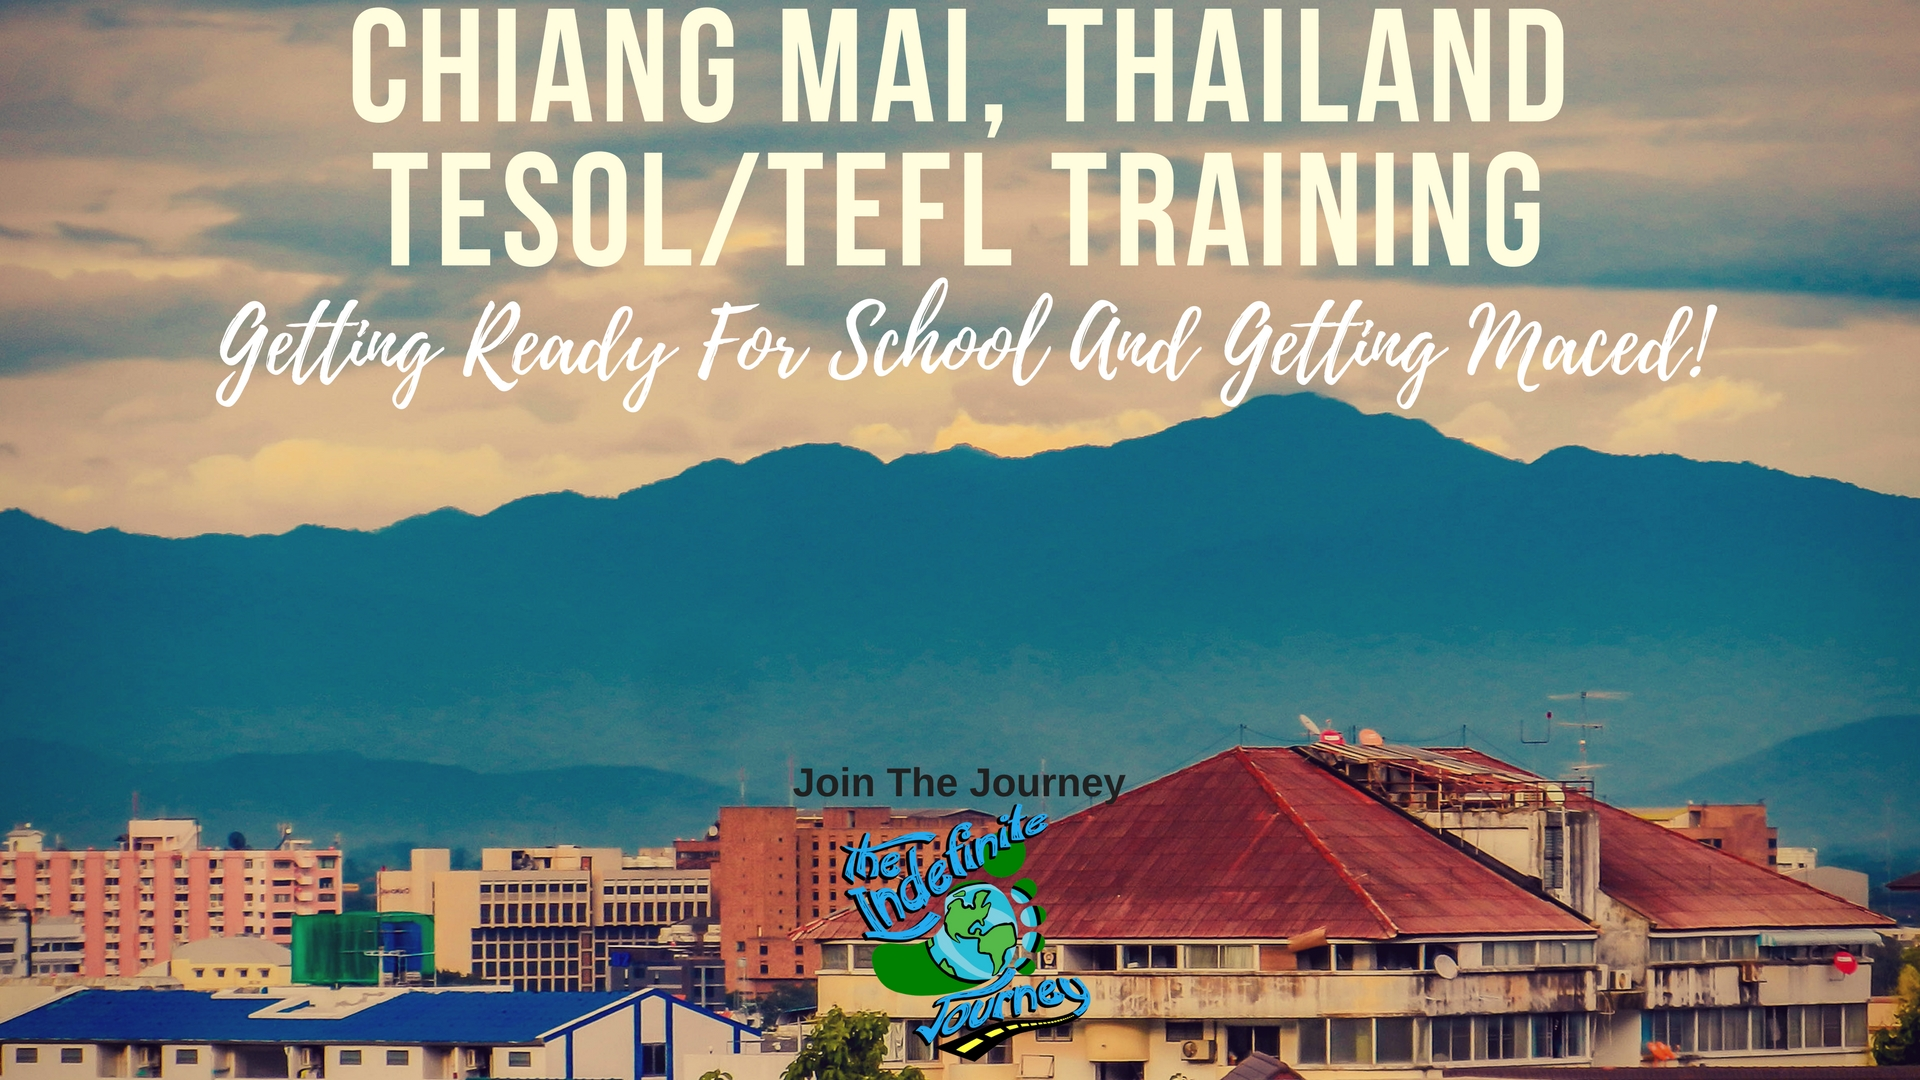 Chiang Mai, Thailand TESOLTEFL Training - Getting Ready For School And Getting Maced!